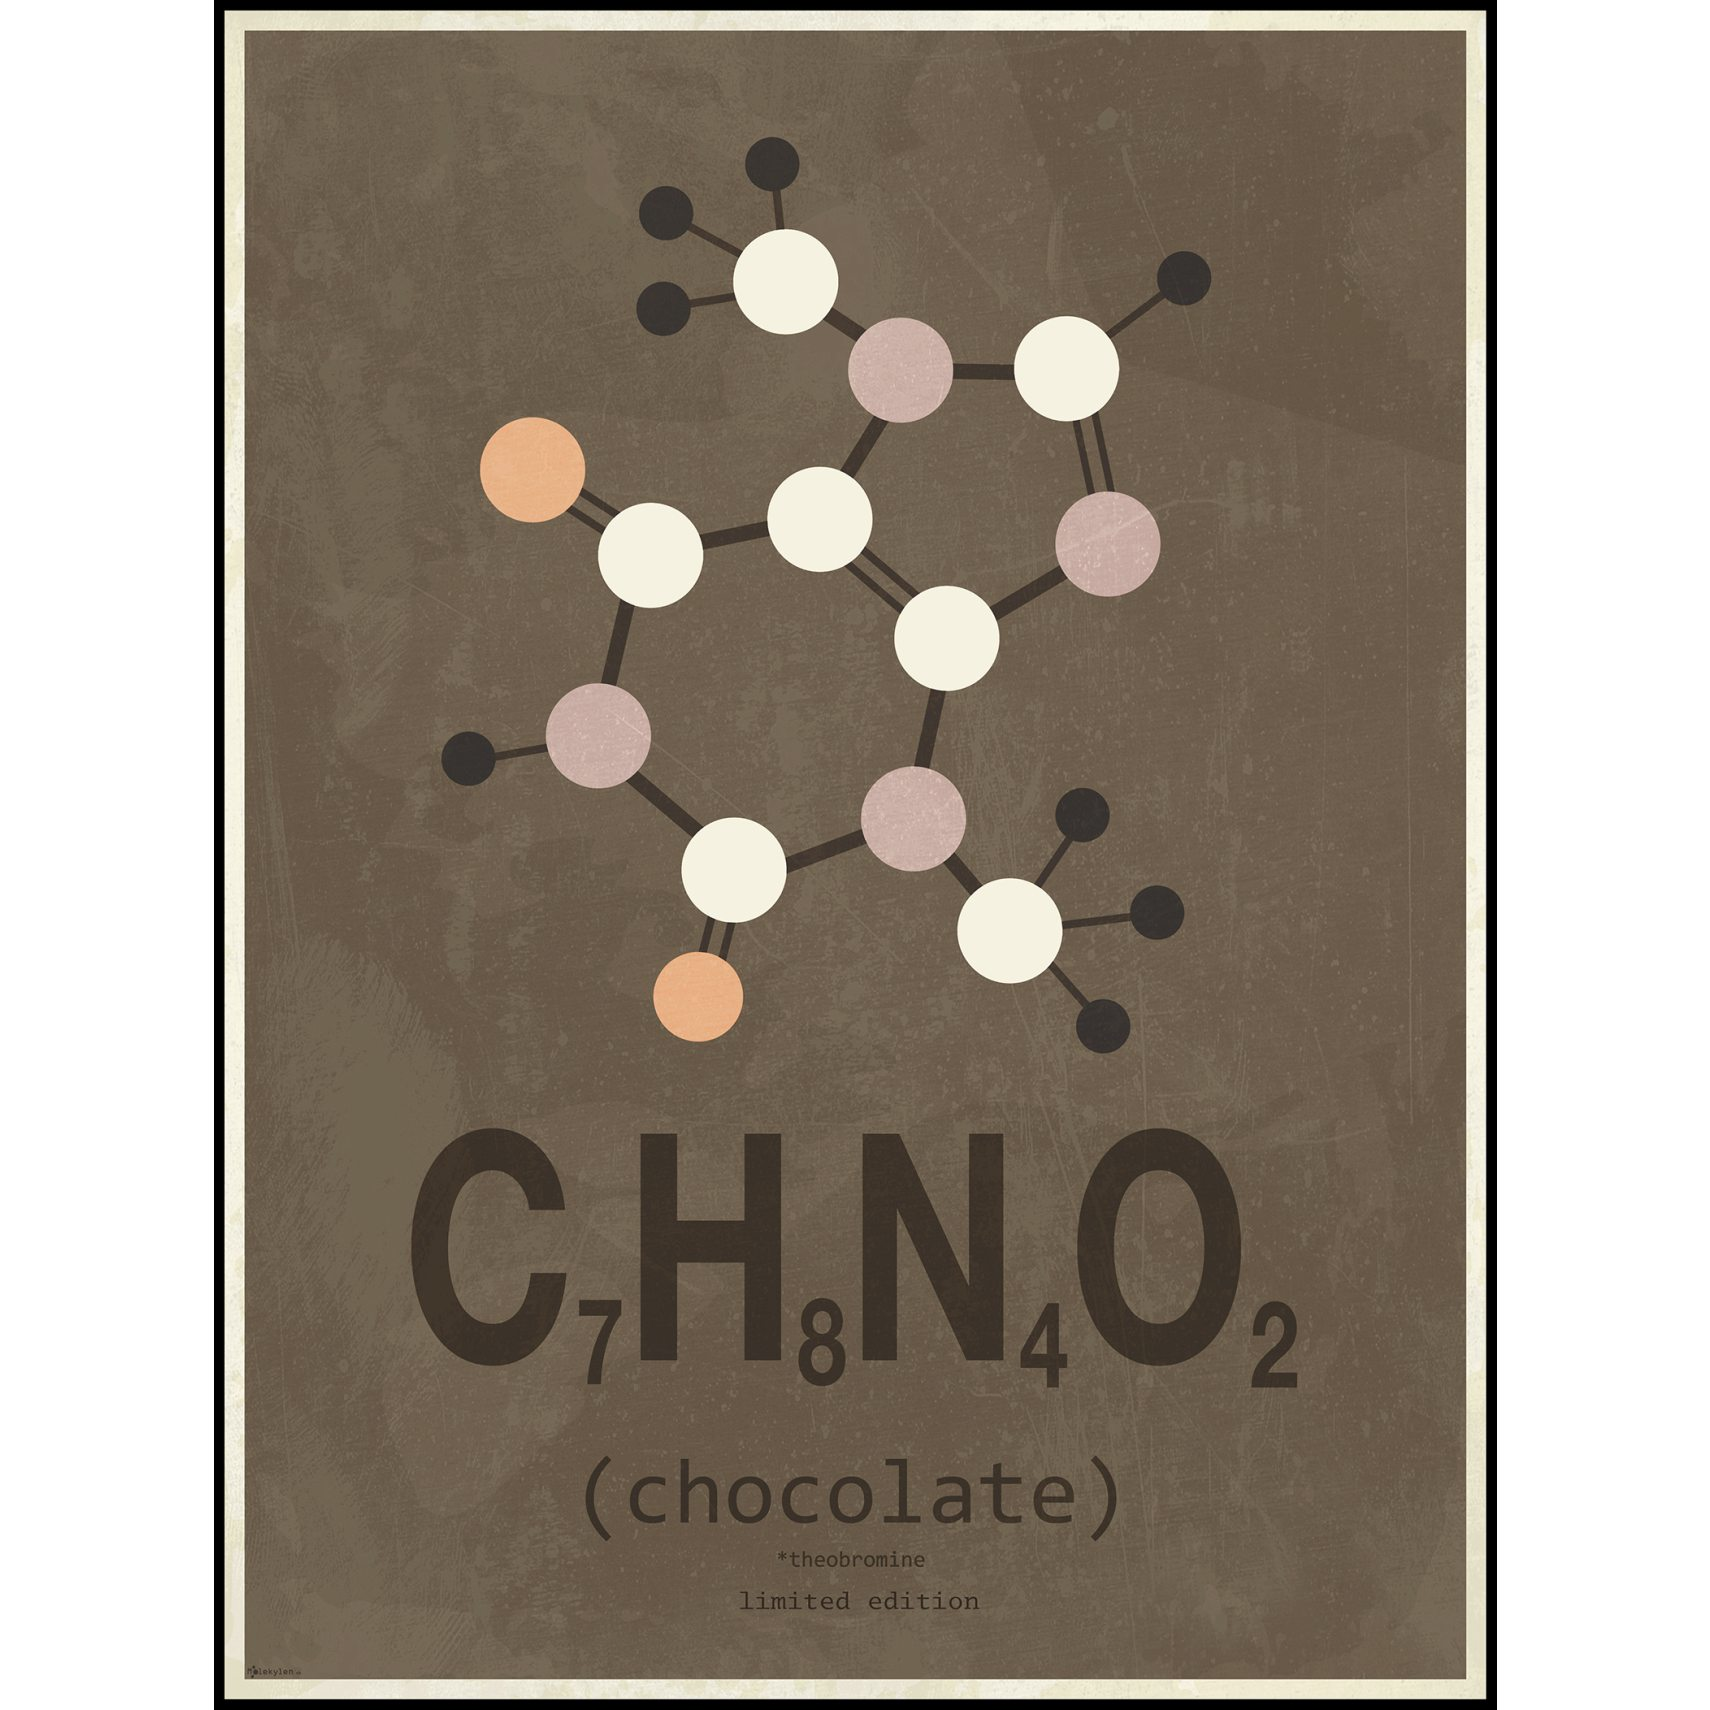 Molecyles Plakat - Chocolate, Limited edition og Sort alu ramme